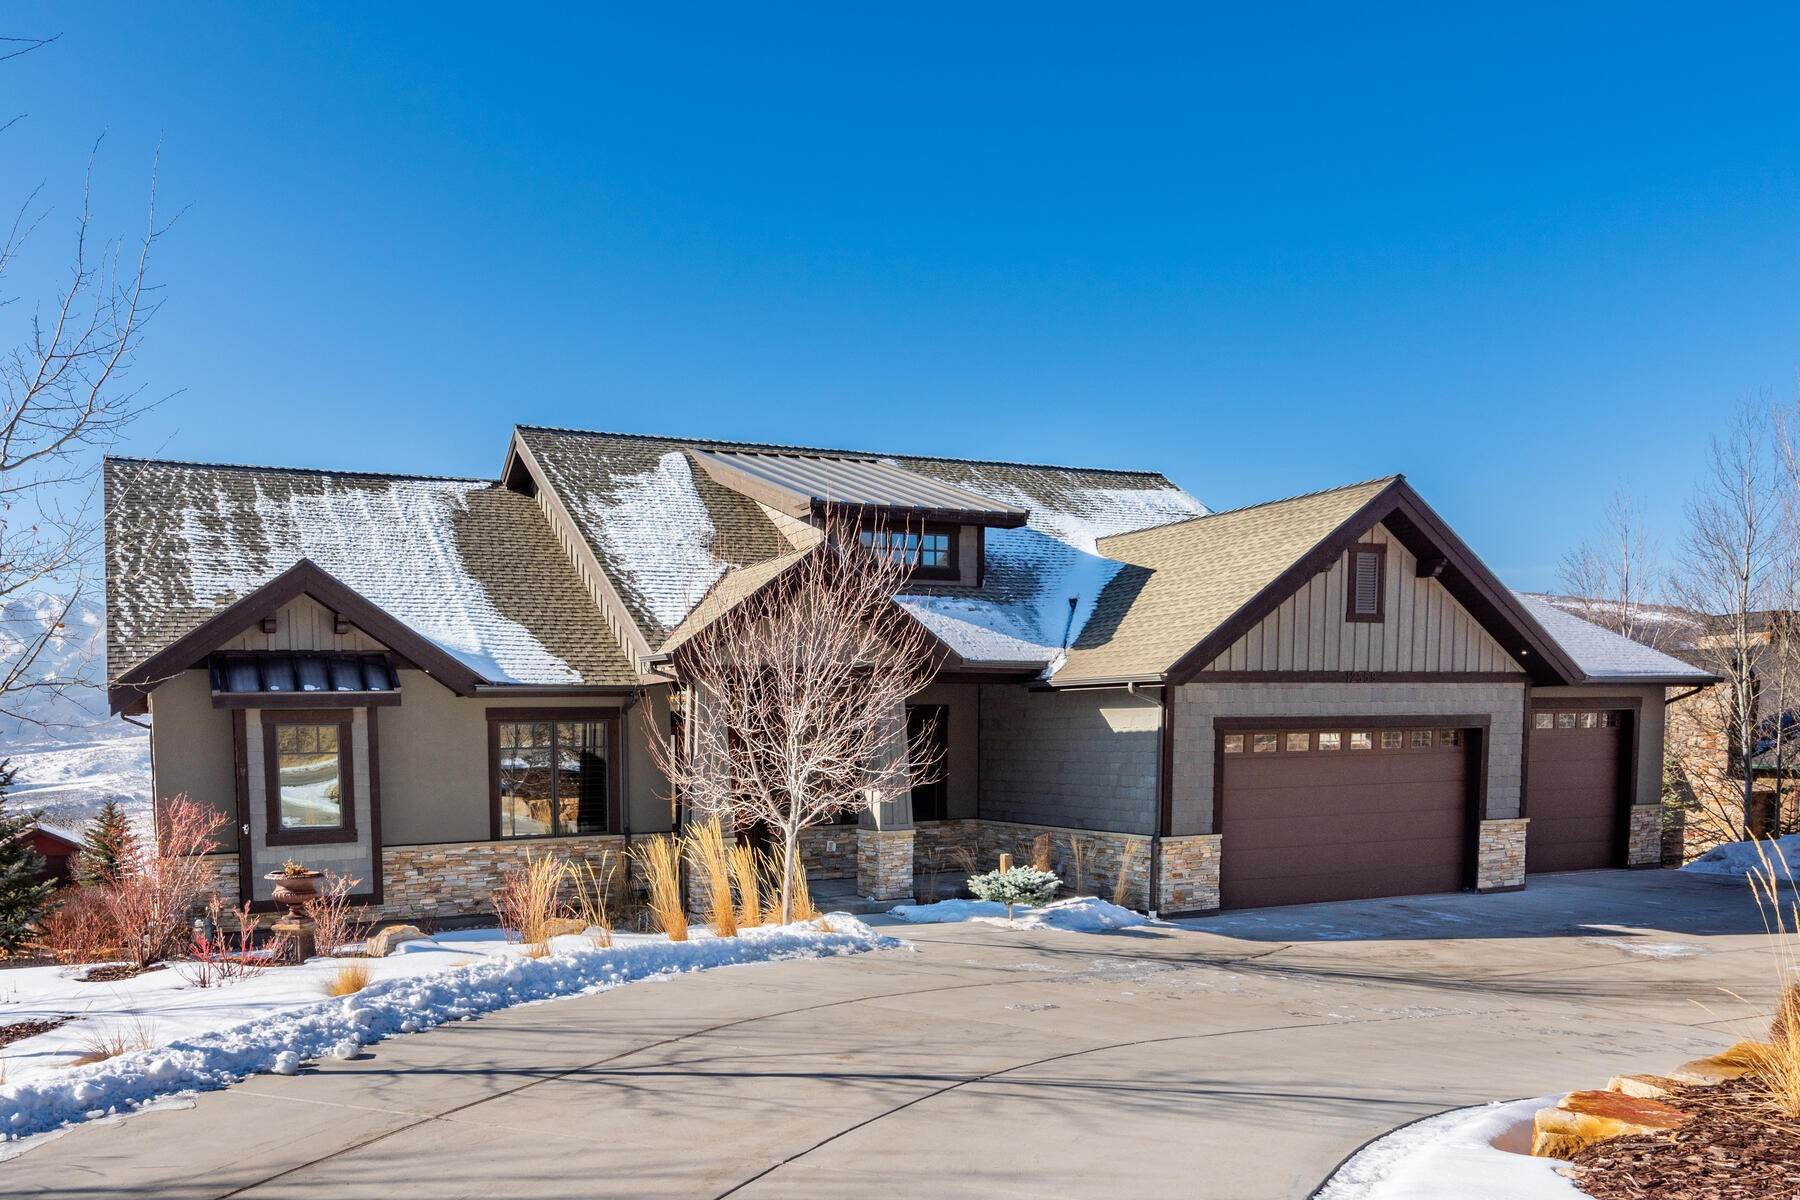 Single Family Homes for Sale at Ultimate Luxury with Sweeping Views of Deer Valley's Bald Mountain & Jordanelle 12559 Mud Springs Circle Kamas, Utah 84036 United States